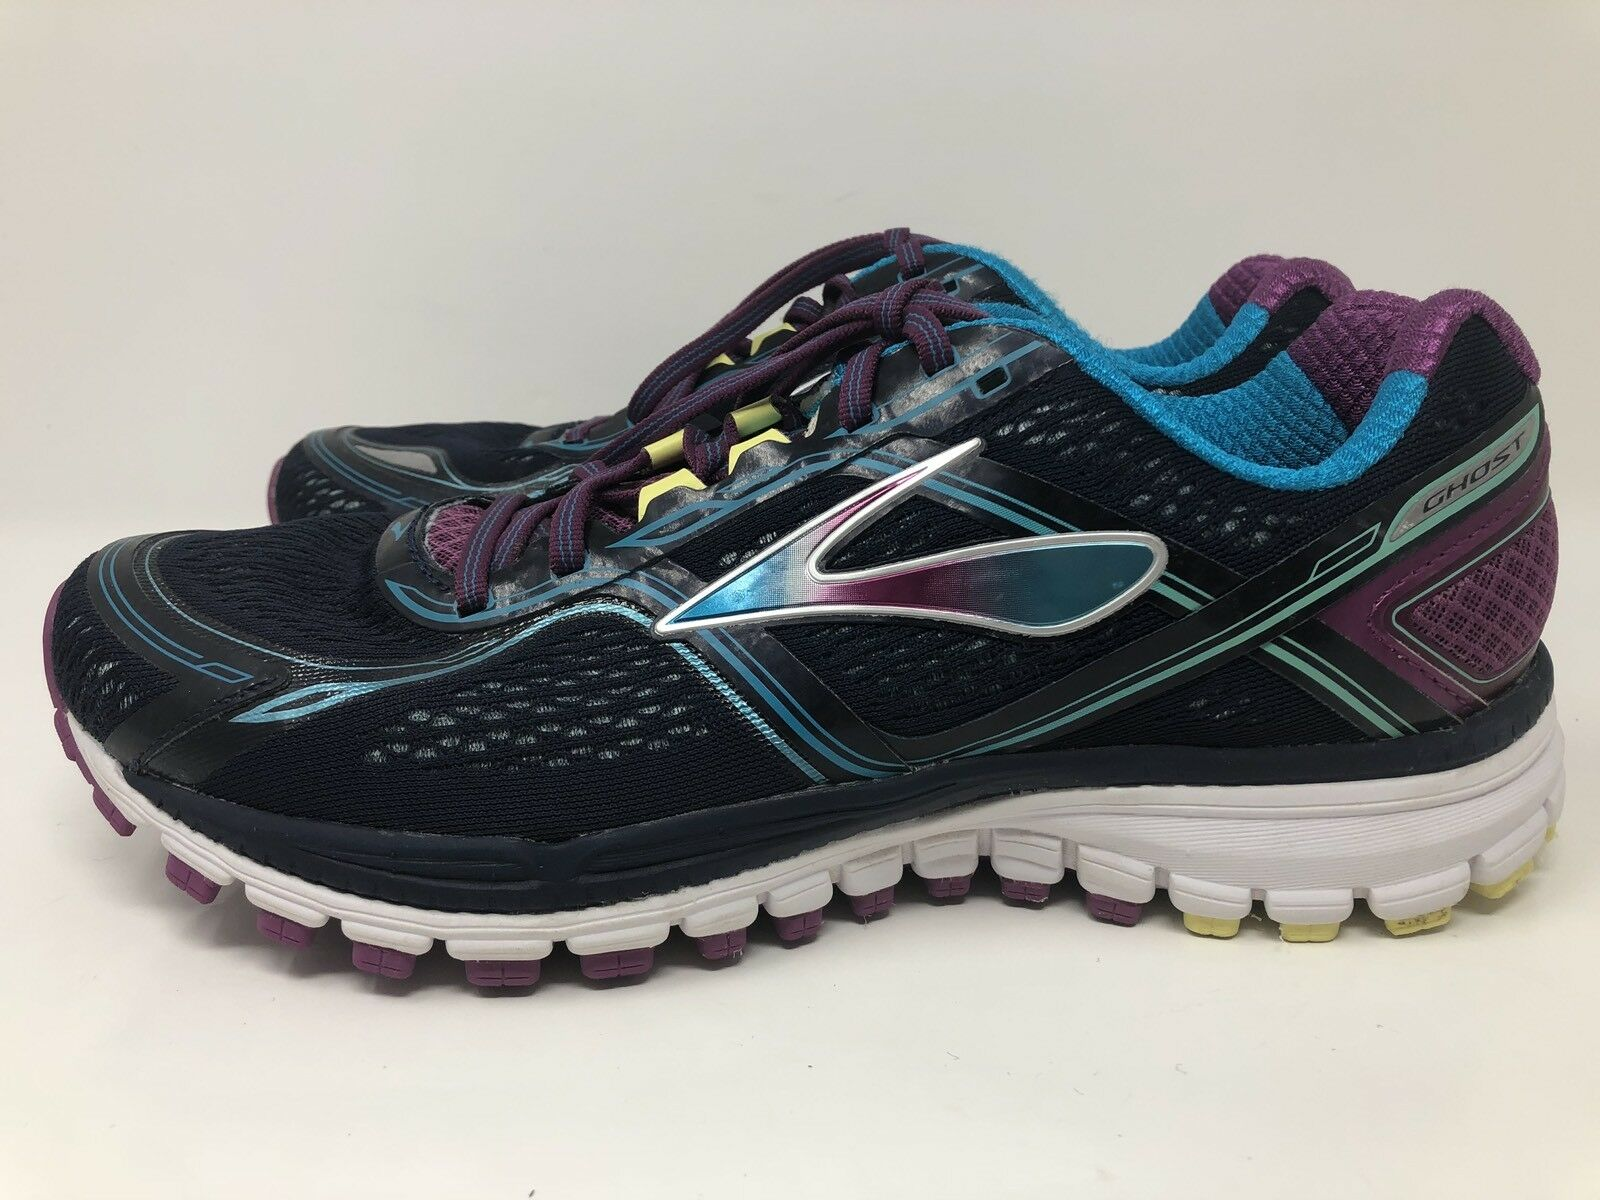 BROOKS GHOST 8 EIGHTH EDITION NAVY TEAL RUNNING Chaussures SNEAKERS Femme 11 M